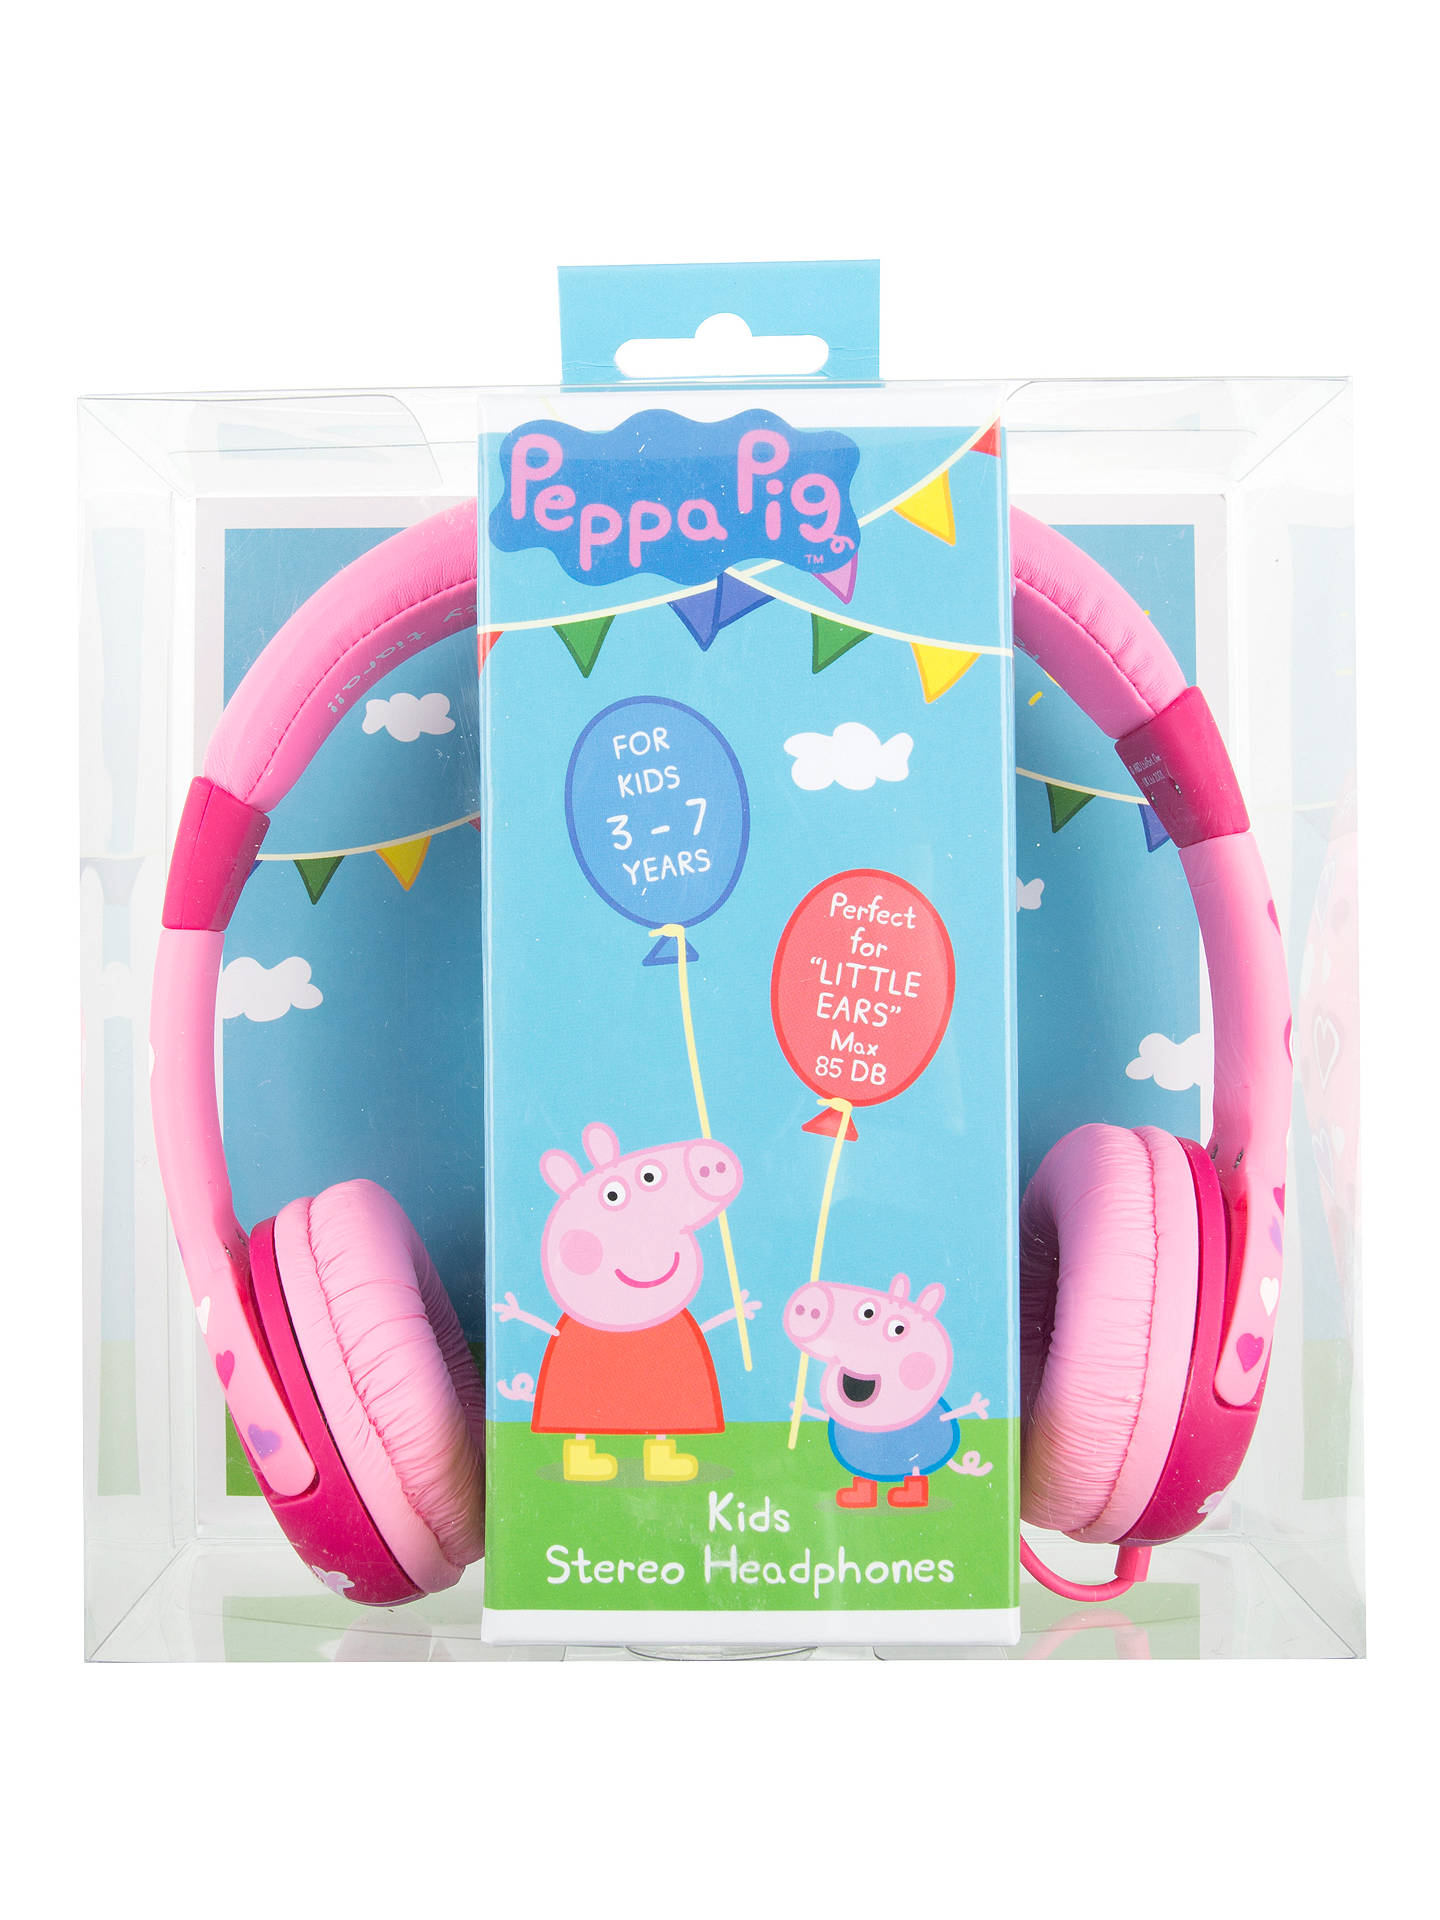 Kondor Peppa Pig Princess Children's On Ear Headphones at